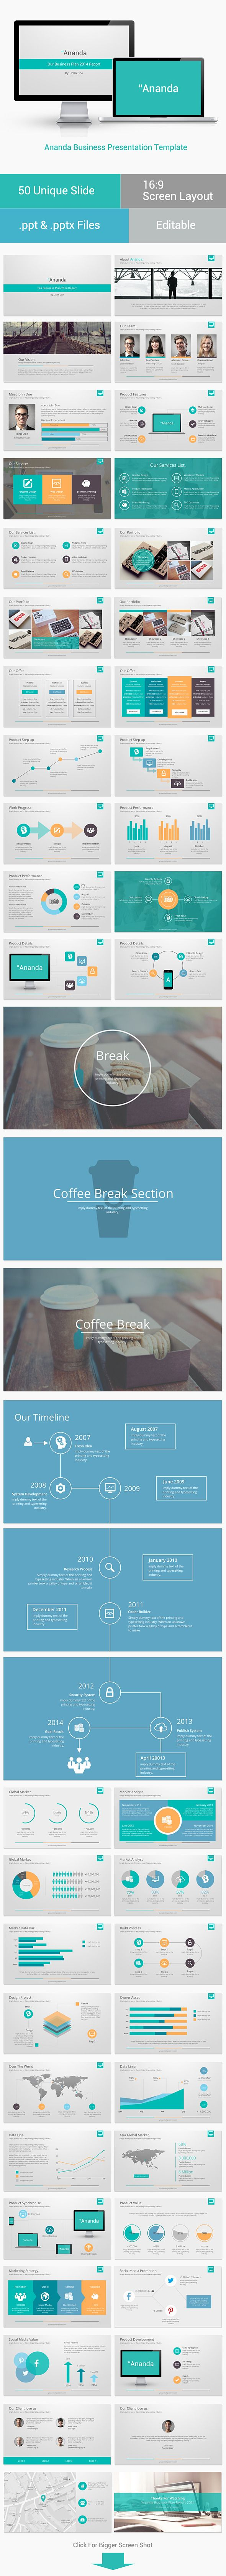 Ananda Powerpoint Business Presentation - Business Powerpoint Templates